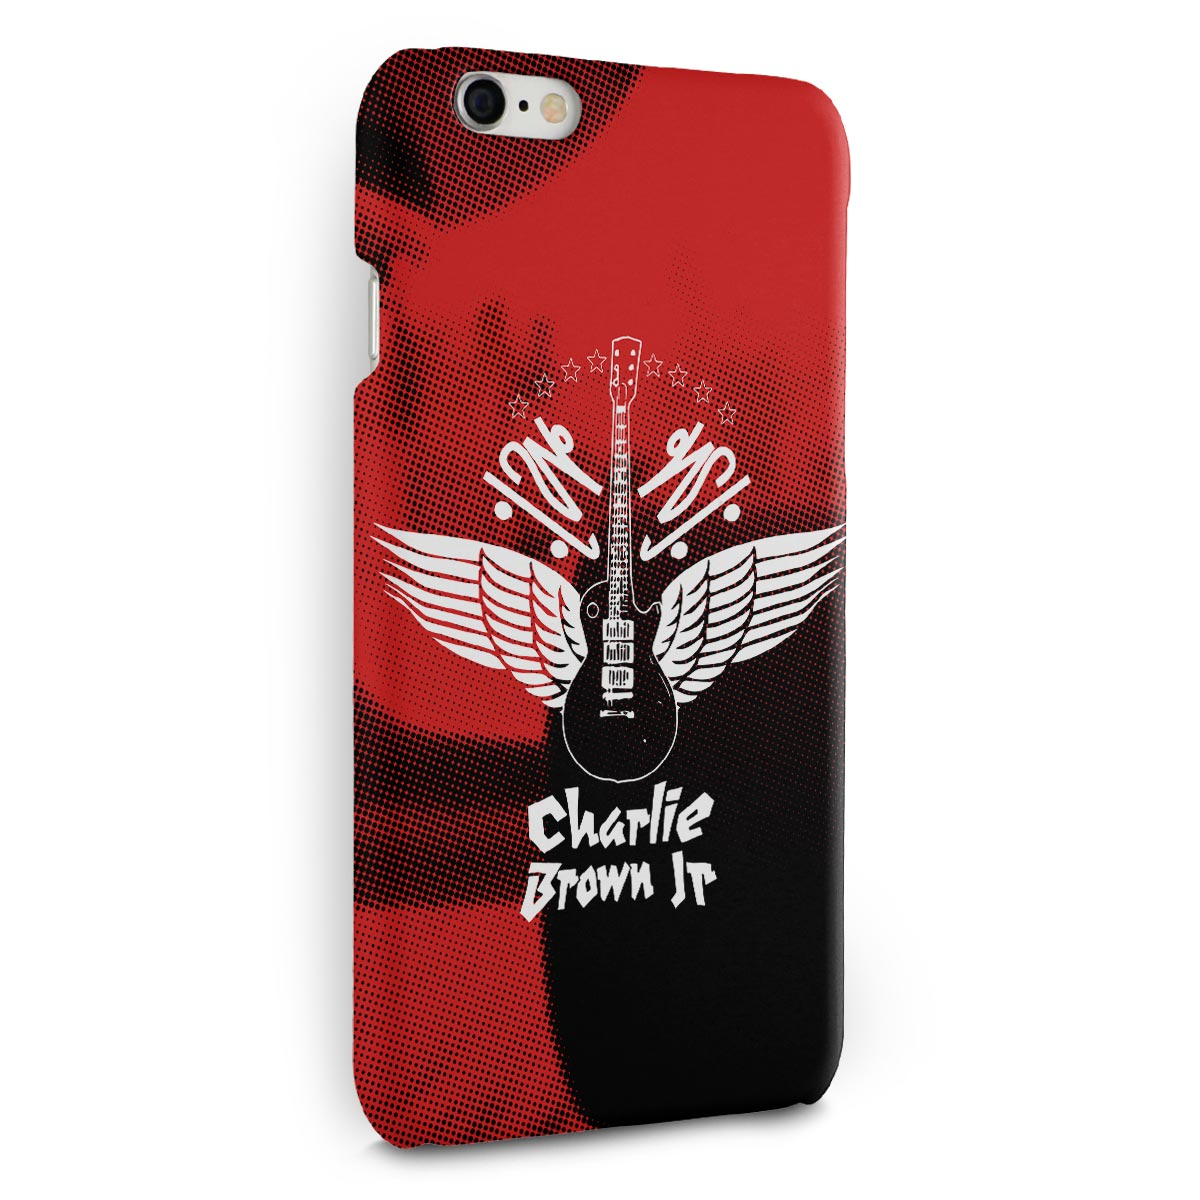 Capa para iPhone 6/6S Plus Charlie Brown Jr. Imunidade Musical